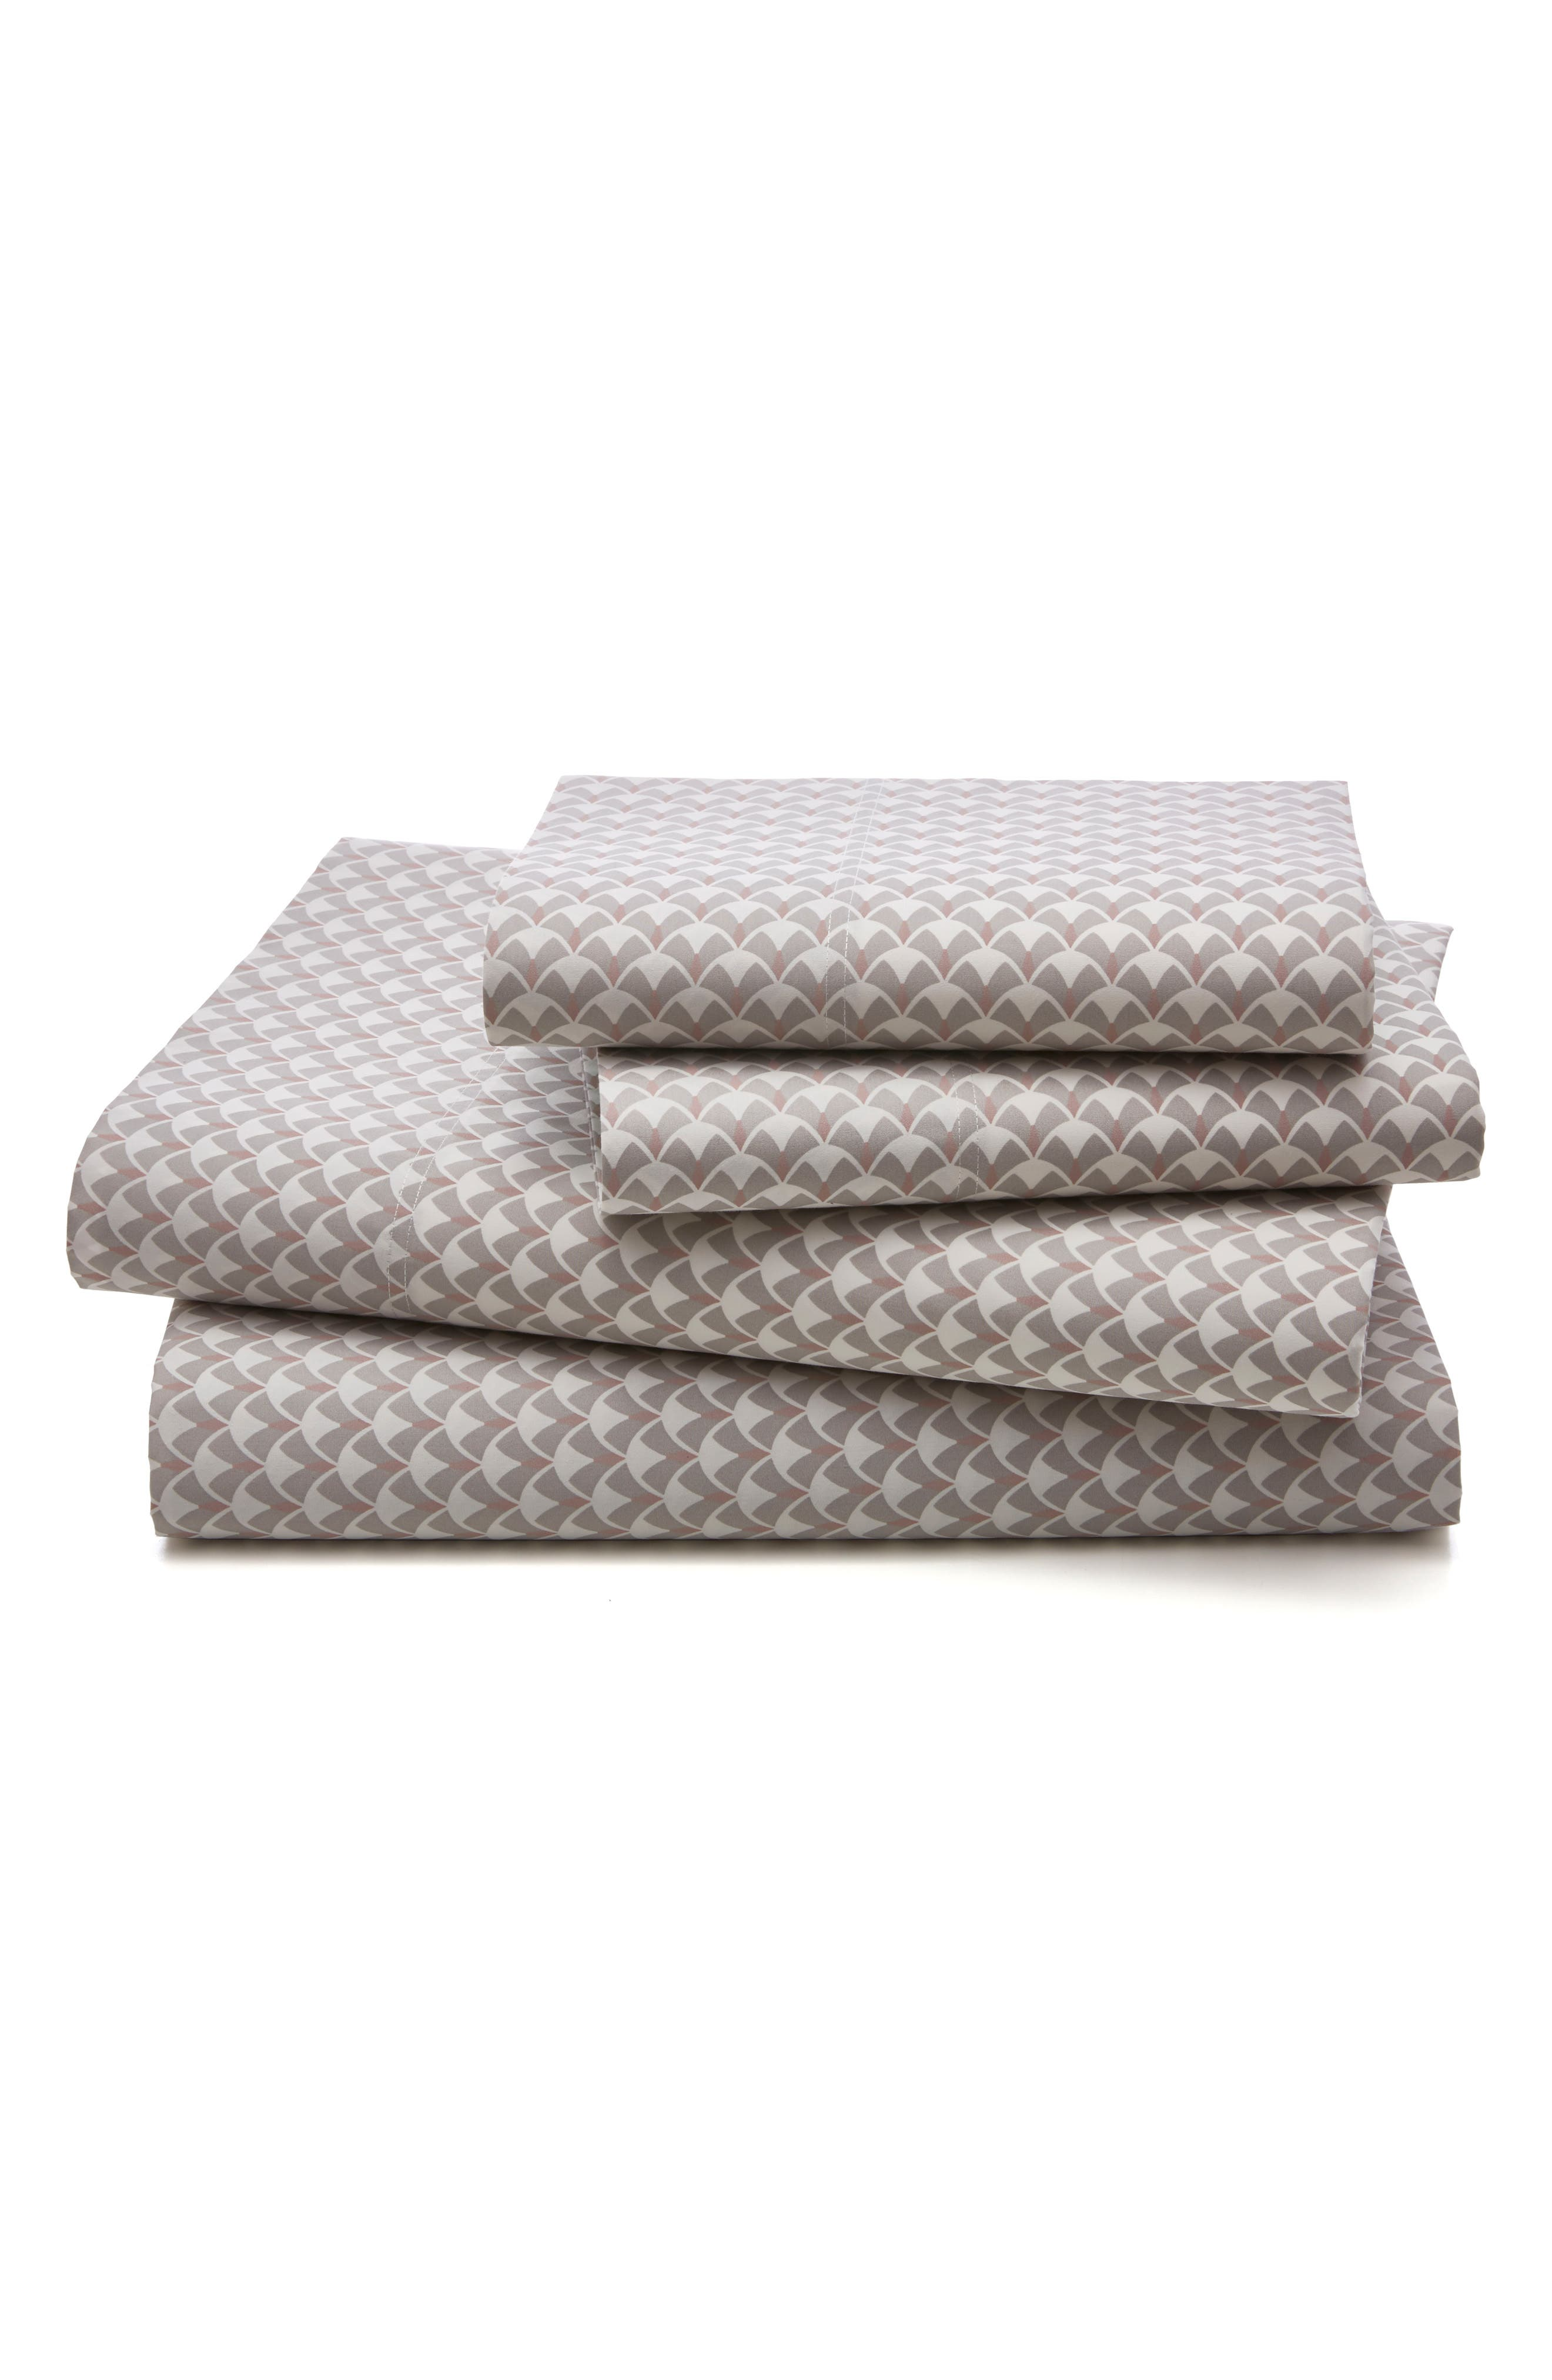 DwellStudio Volo 300 Thread Count Sheet Set